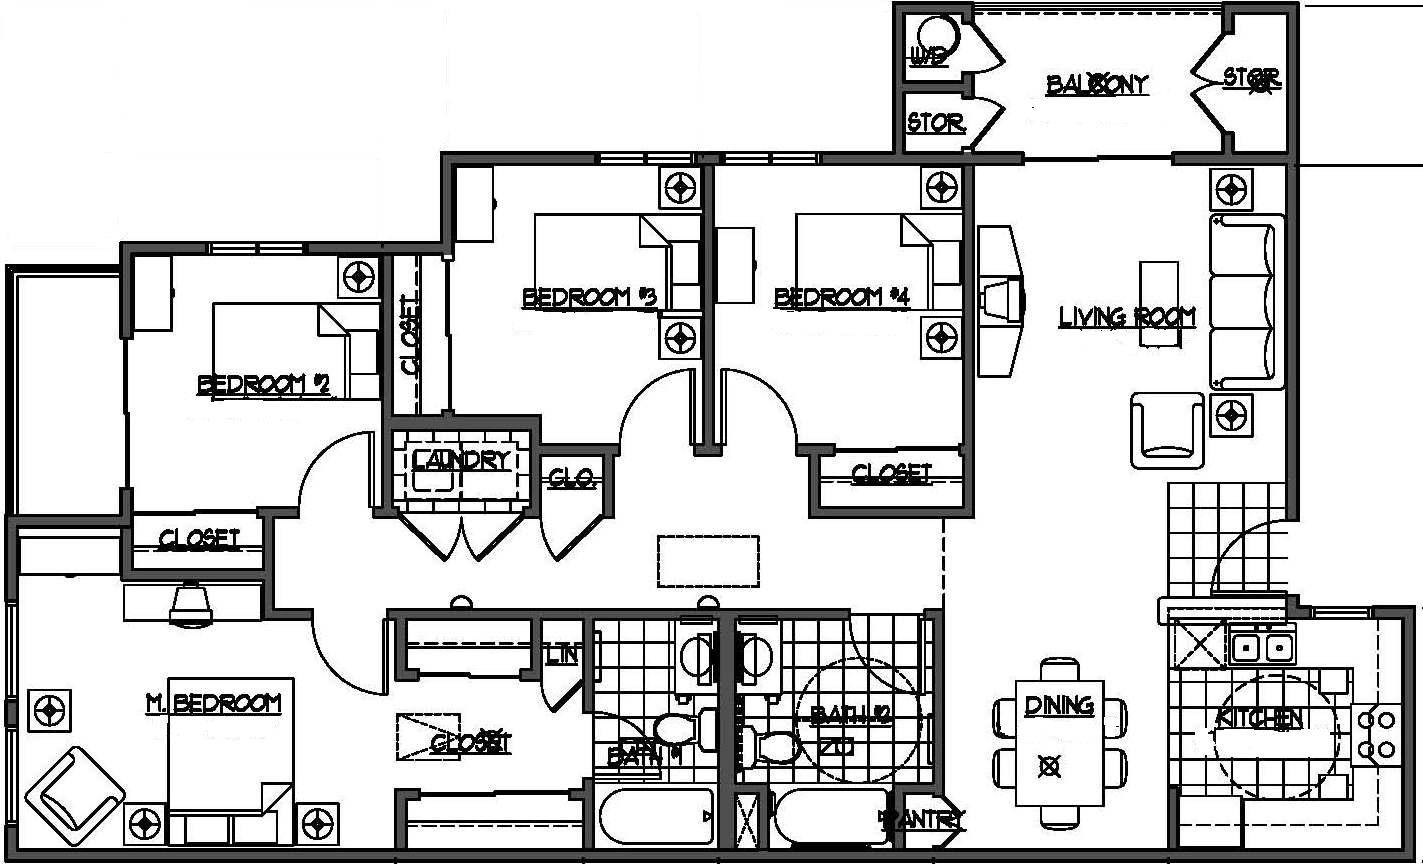 four bedroom house plans  kelseybash ranch  66290